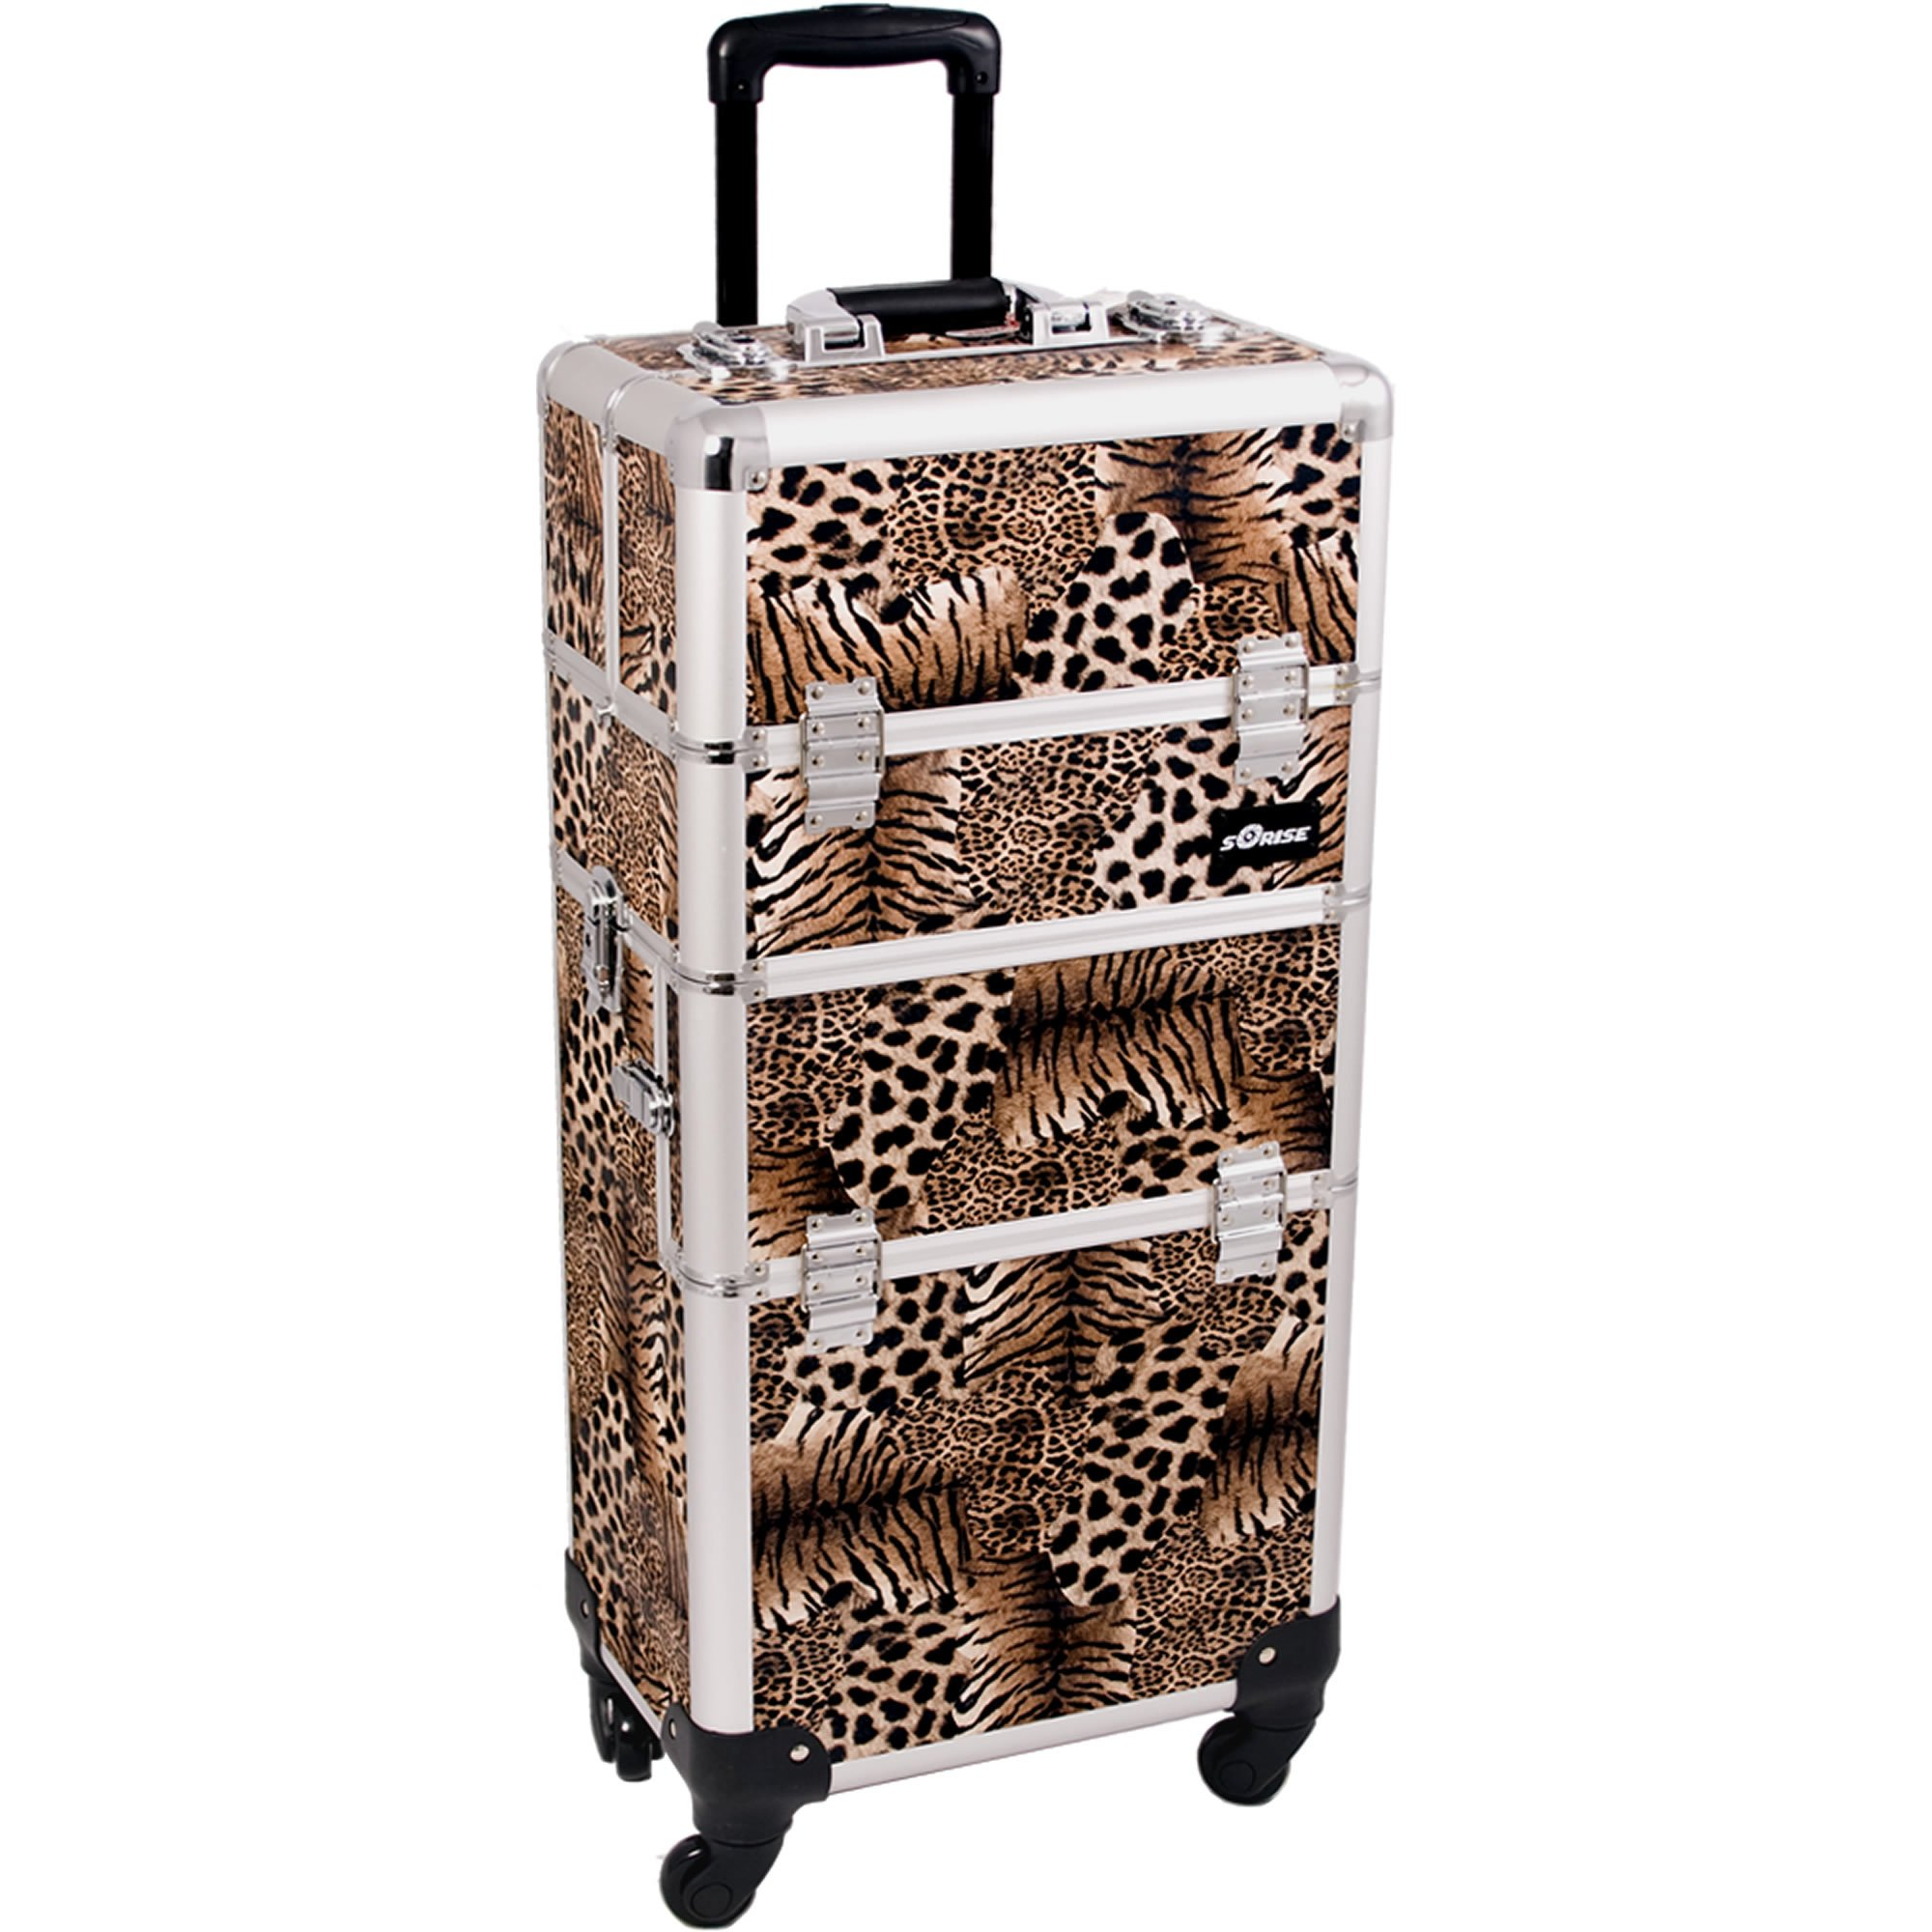 SUNRISE Makeup Case on Wheels 2 in 1 I3561 Hair Stylist Professional, 3 Trays and 1 Removable Tray, Locking with 2 Mirrors, Brush Holder and Shoulder Strap, Brown Leopard